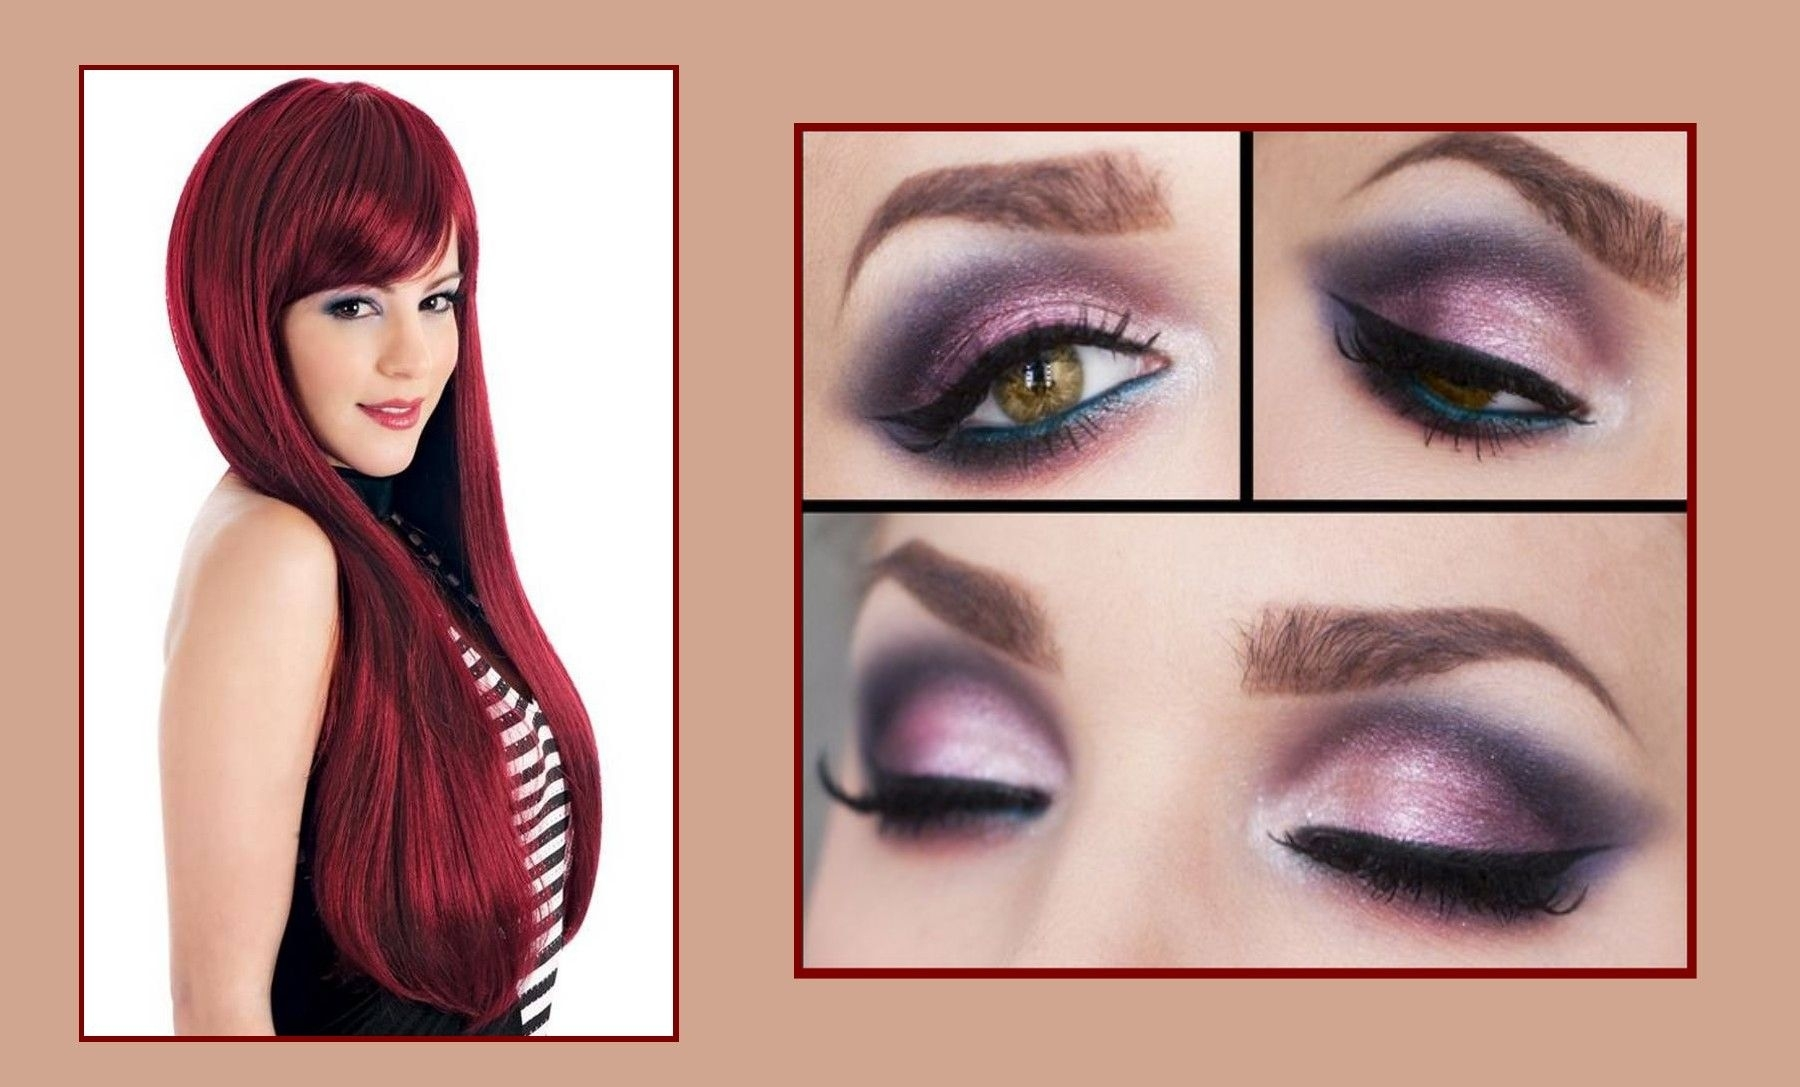 Makeup For Hazel Green Eyes | Makeup For Green Eyes And Red Hair in What Eyeshadow For Hazel Eyes And Red Hair